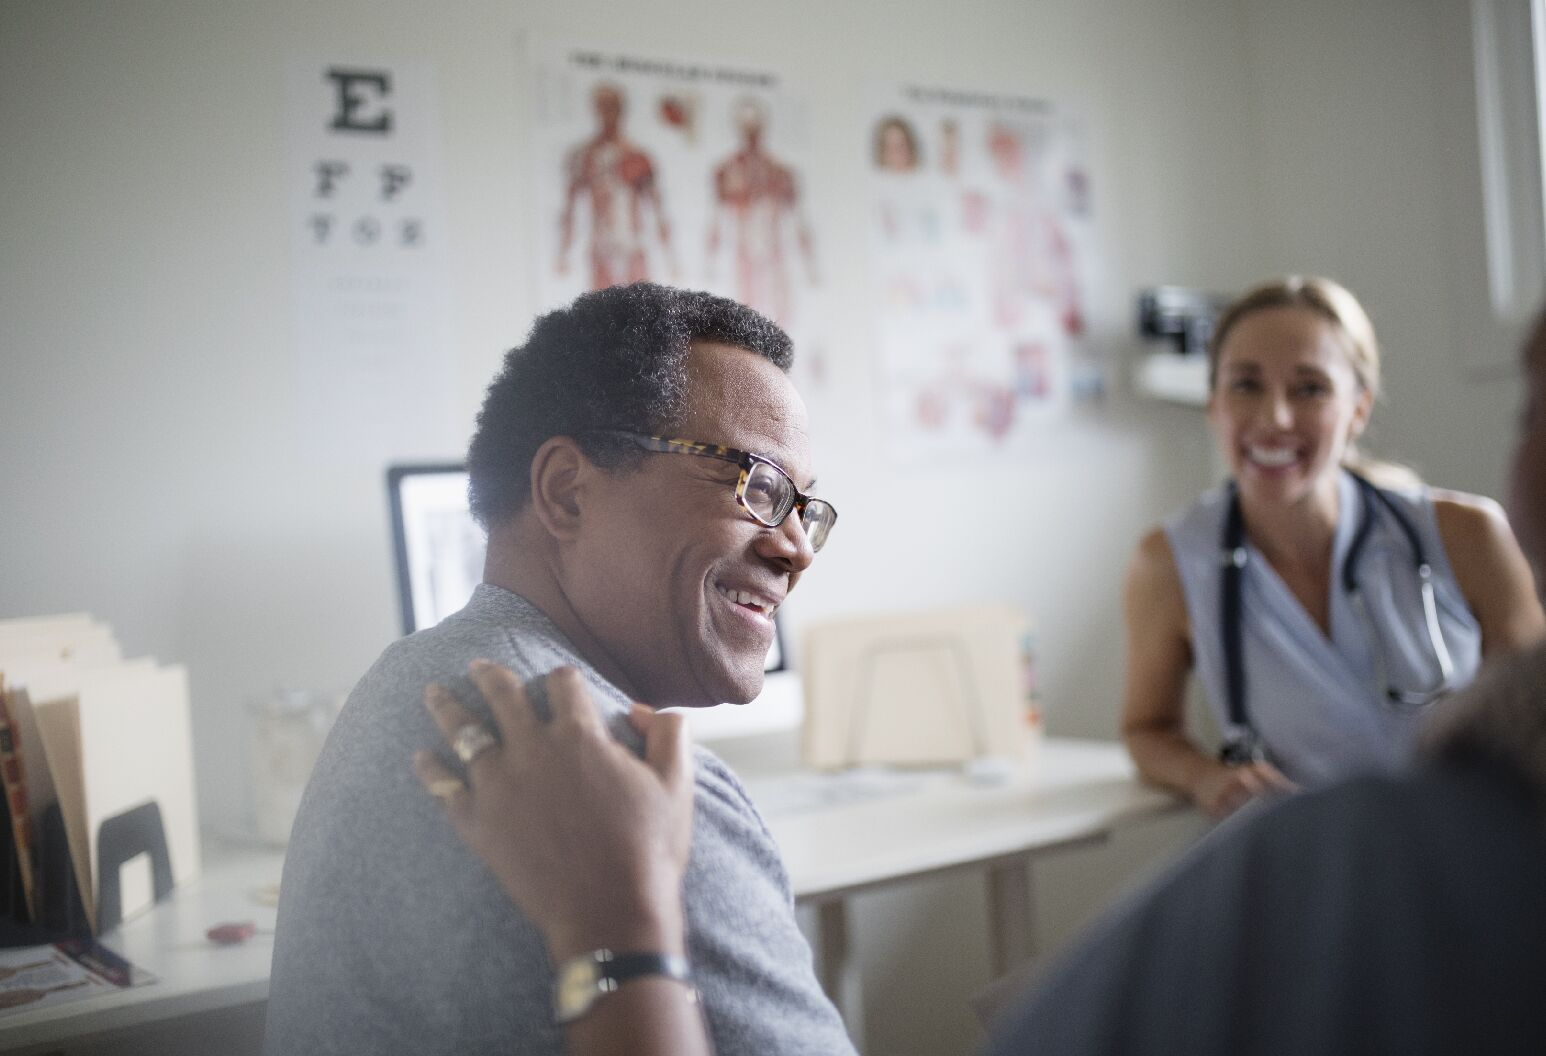 A man wearing glasses smiling talking to a doctor.